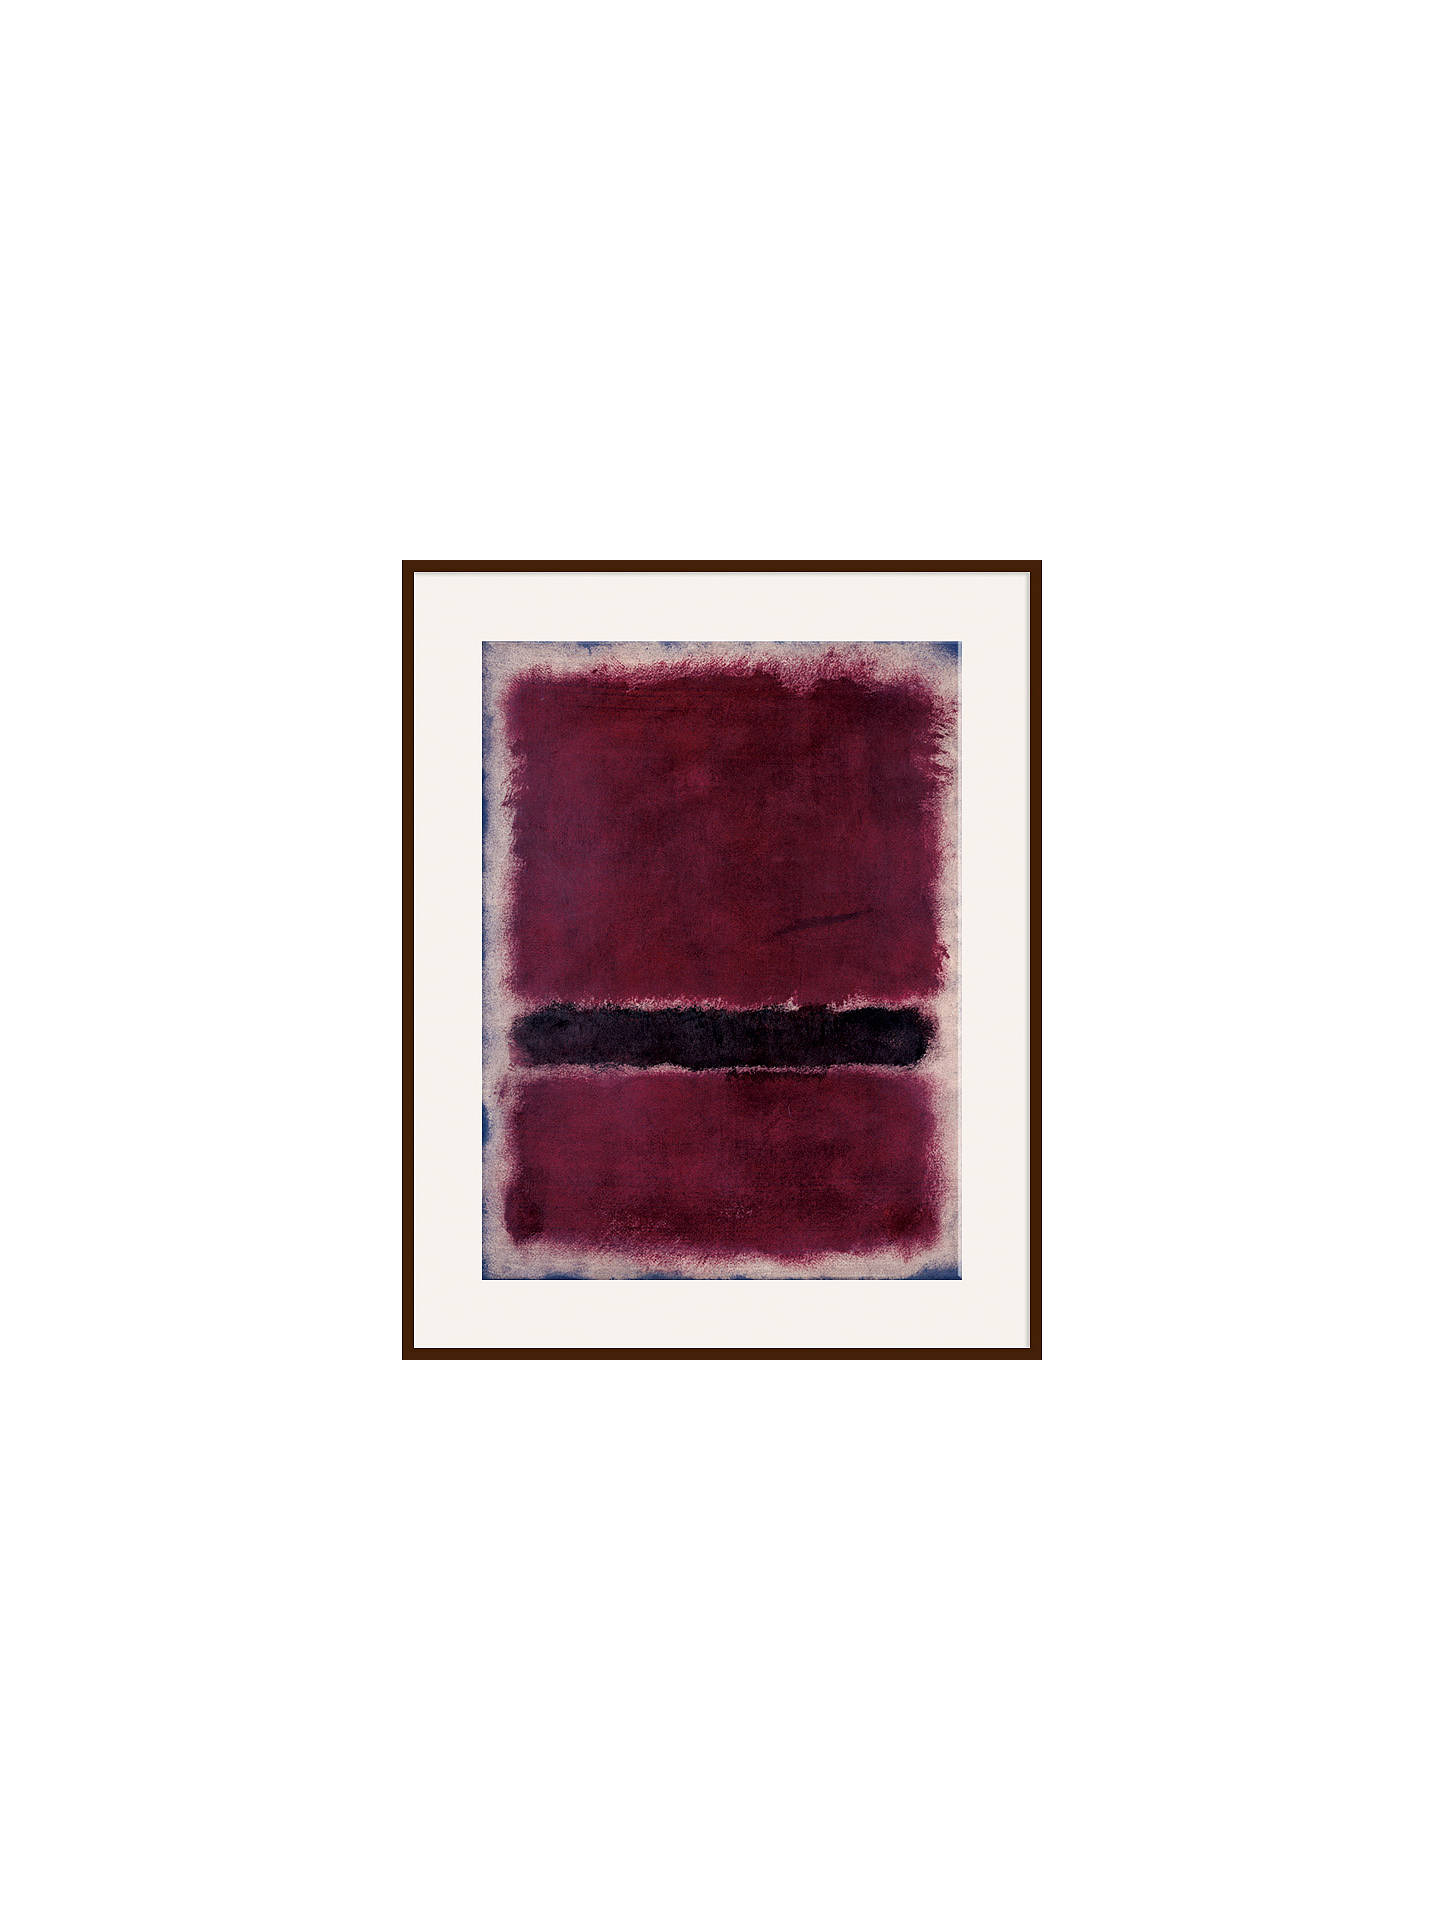 Buy Rothko - Untitled 1963 Ash Wood Framed, 80 x 60cm, Dark Brown Framed Print Online at johnlewis.com